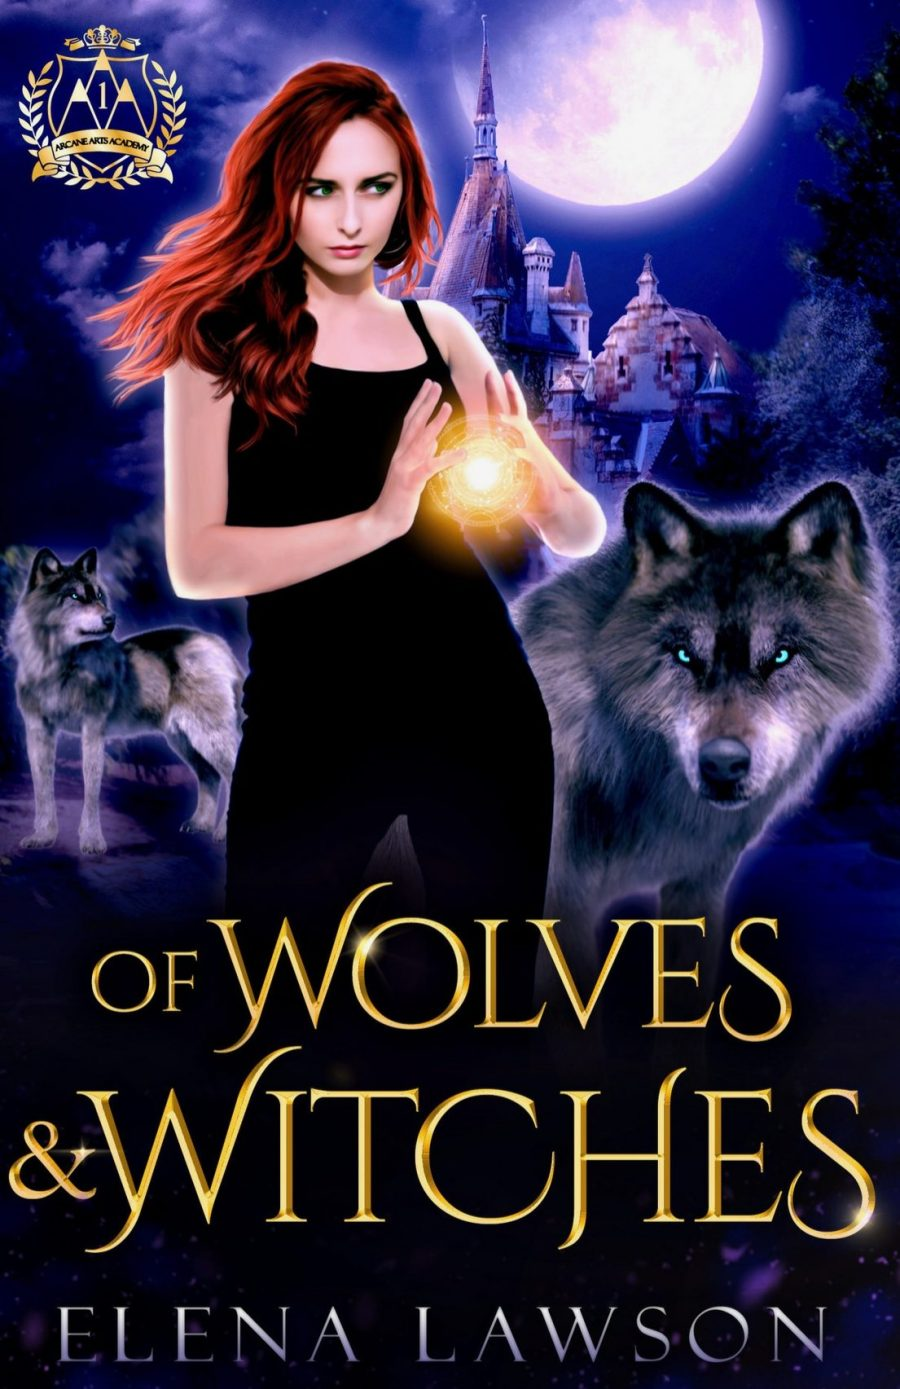 Of Wolves and Witches *Arcane Academy -Book 1* by Elena Lawson - A Book Review #BookReview #SlowBurn #RH #WhyChoose #Wolves #Witches #Shifters #Academy